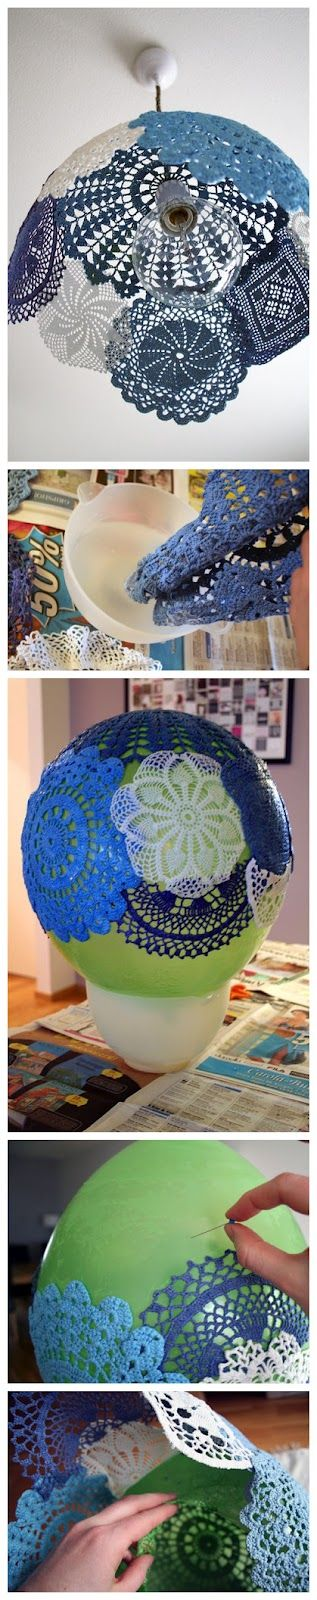 DIY Dyed Doily Lampshades